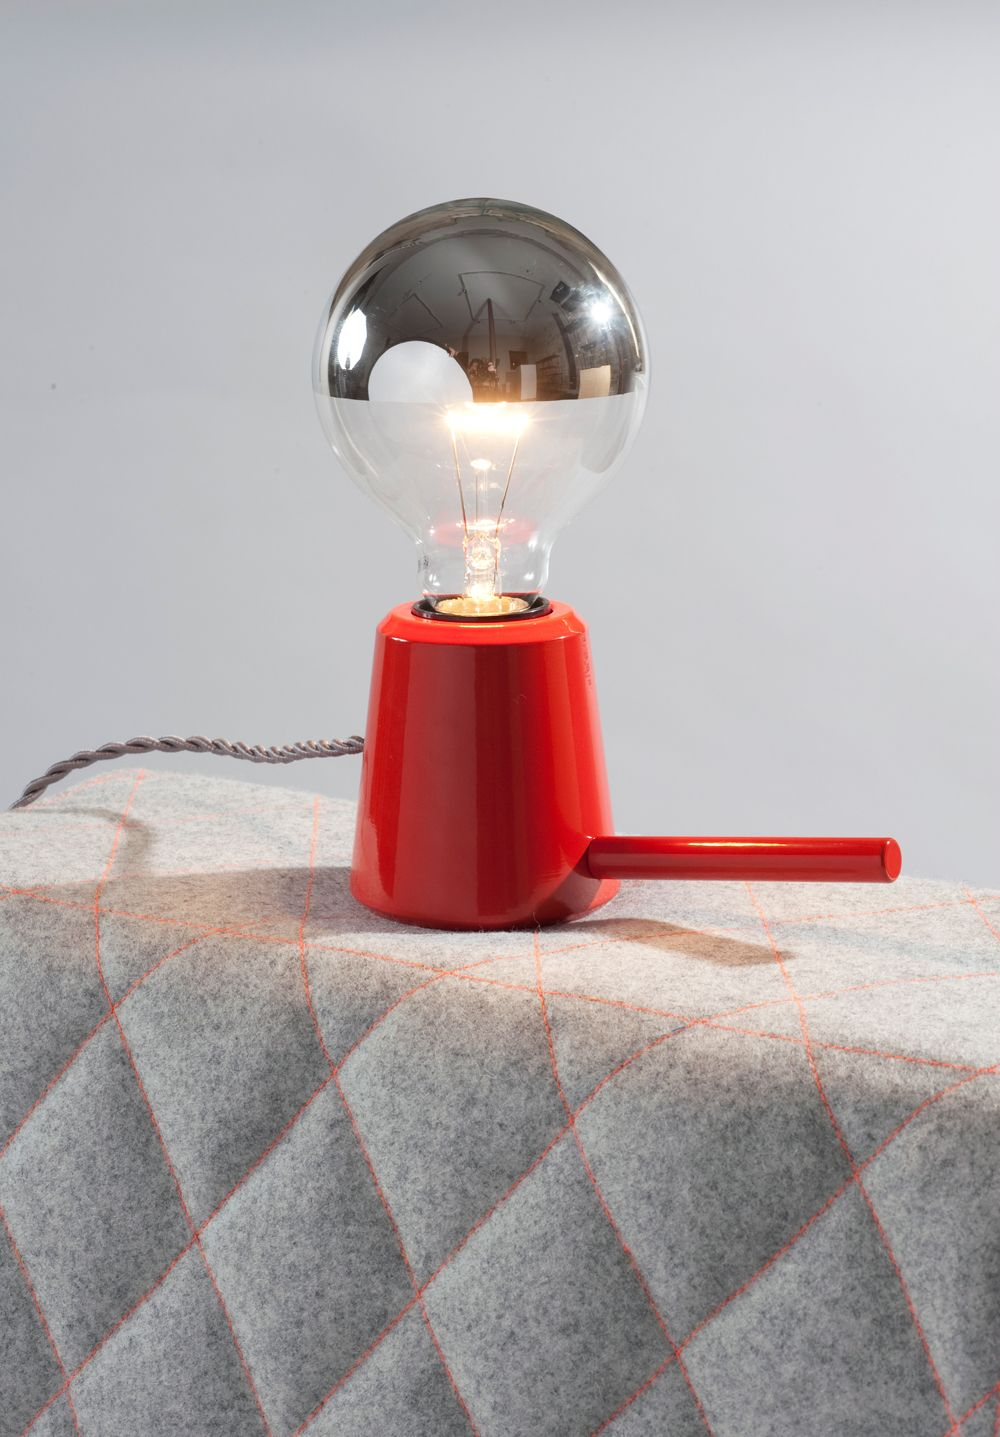 Cahute By Piergil Fourqui 233 Lamps Lighting Lamp Light